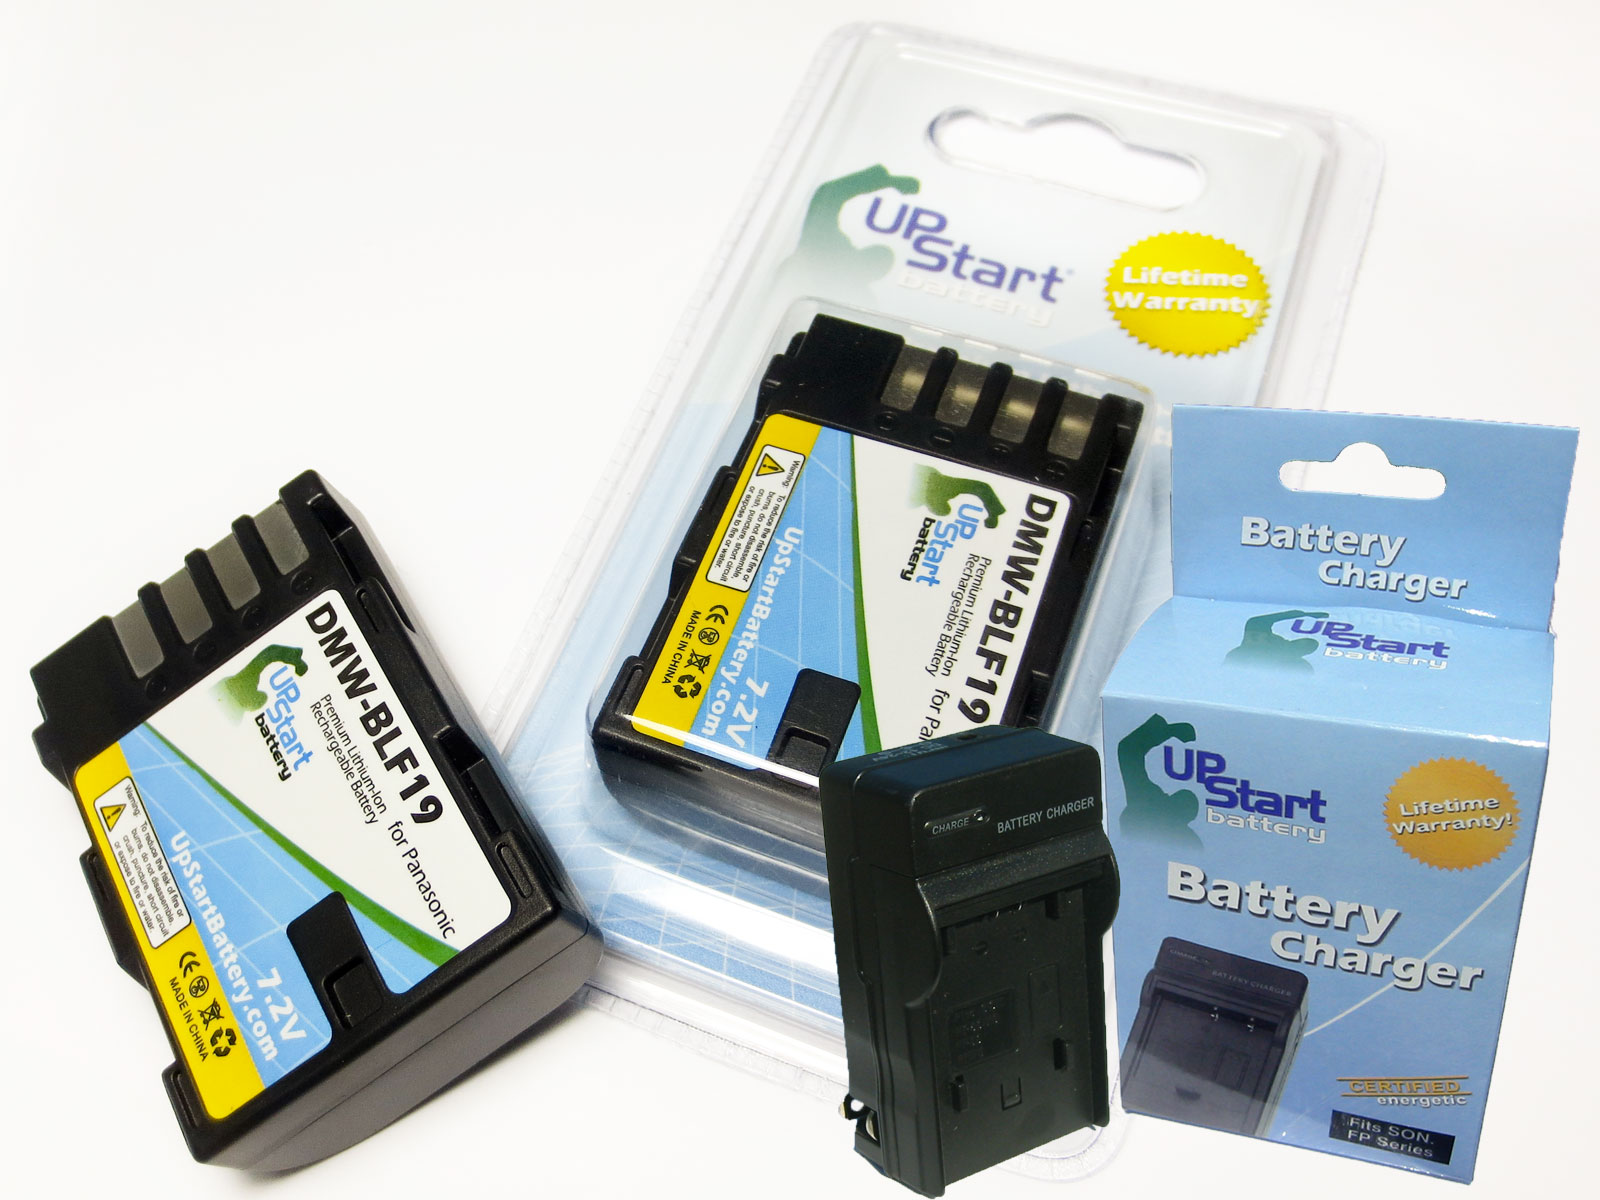 UpStart Battery 2x Pack - Panasonic Lumix DMC-GH3 Digital Camera Battery + Charger - Replacement Kit for Panasonic DMW-BLF19 at Sears.com